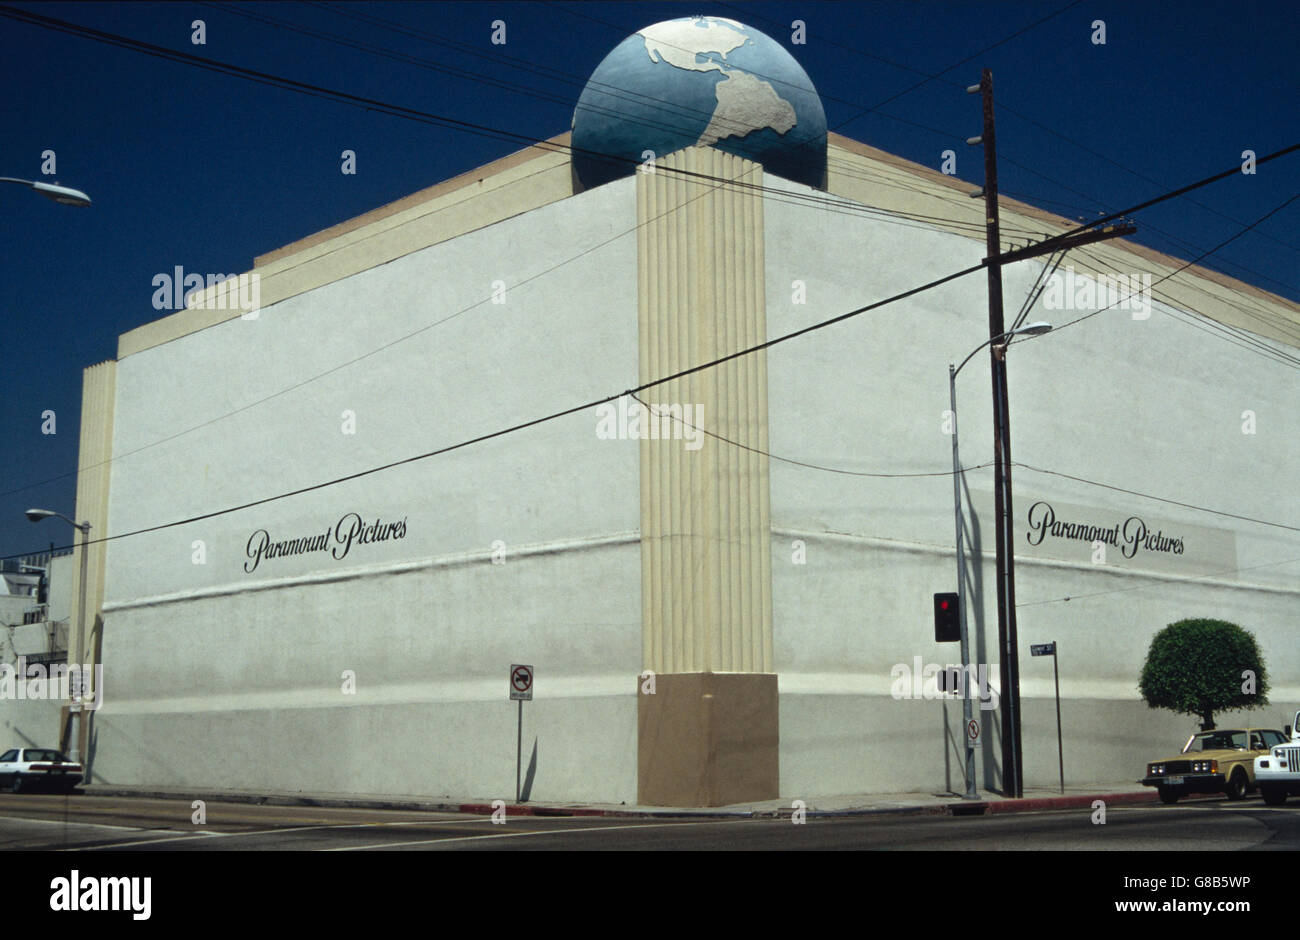 Archive image of Paramount Pictures building, former RKO studios with RKO Globe, corner of Melrose & Gower Streets, Stock Photo